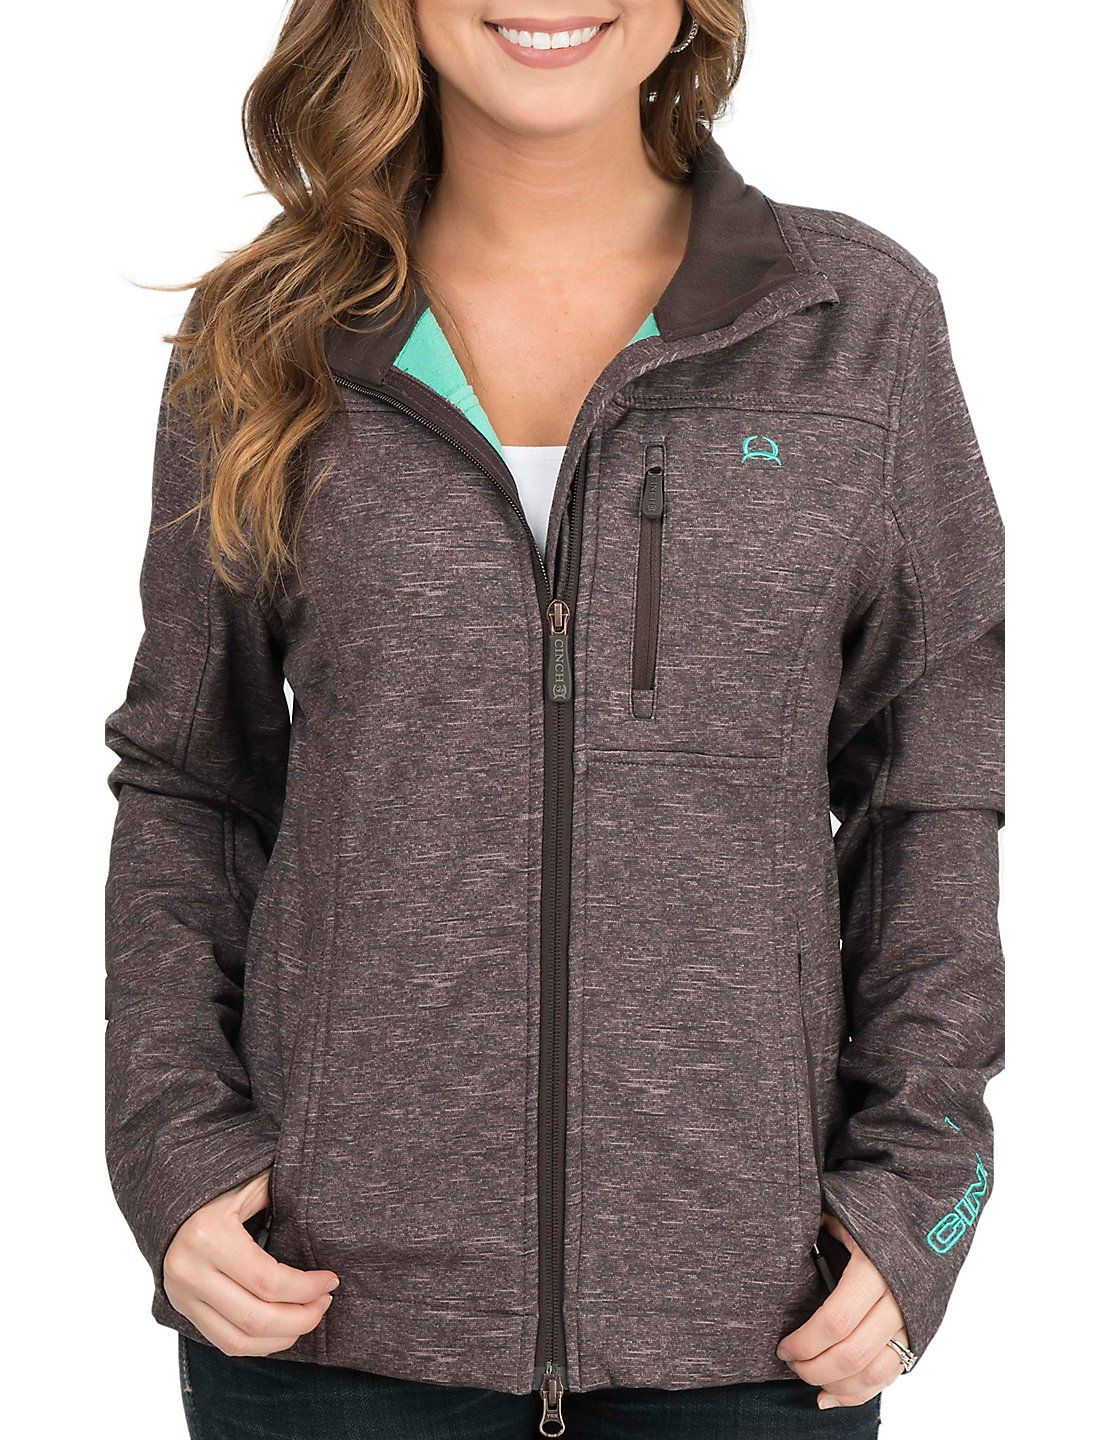 Cinch Women S Brown With Turquoise Accents Bonded Softshell Jacket Cavender S Fashion Clothes Clothes For Women [ 1440 x 1110 Pixel ]